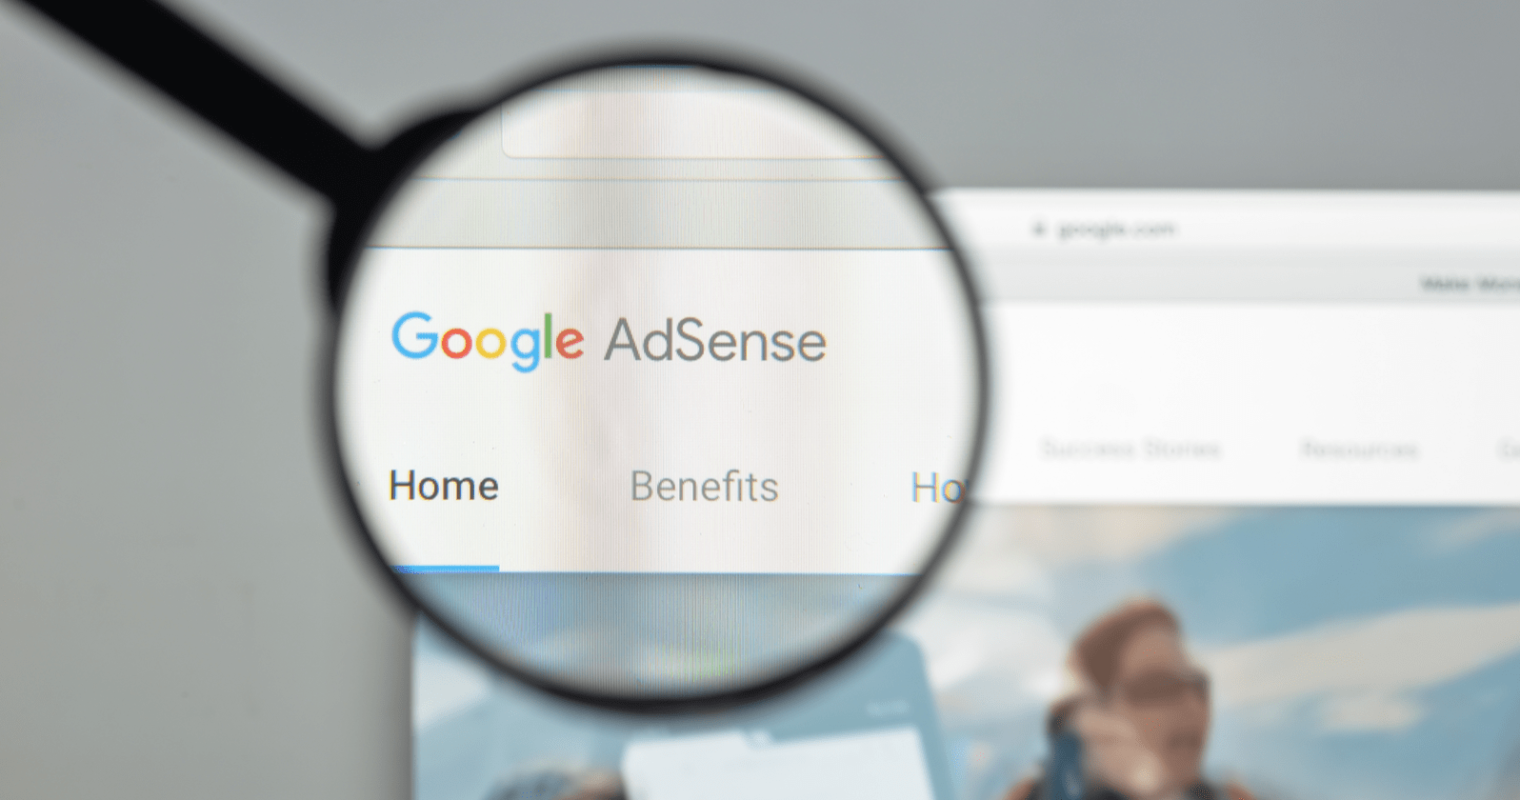 Google AdSense Earnings Fluctuations Not Related to Algorithm Update